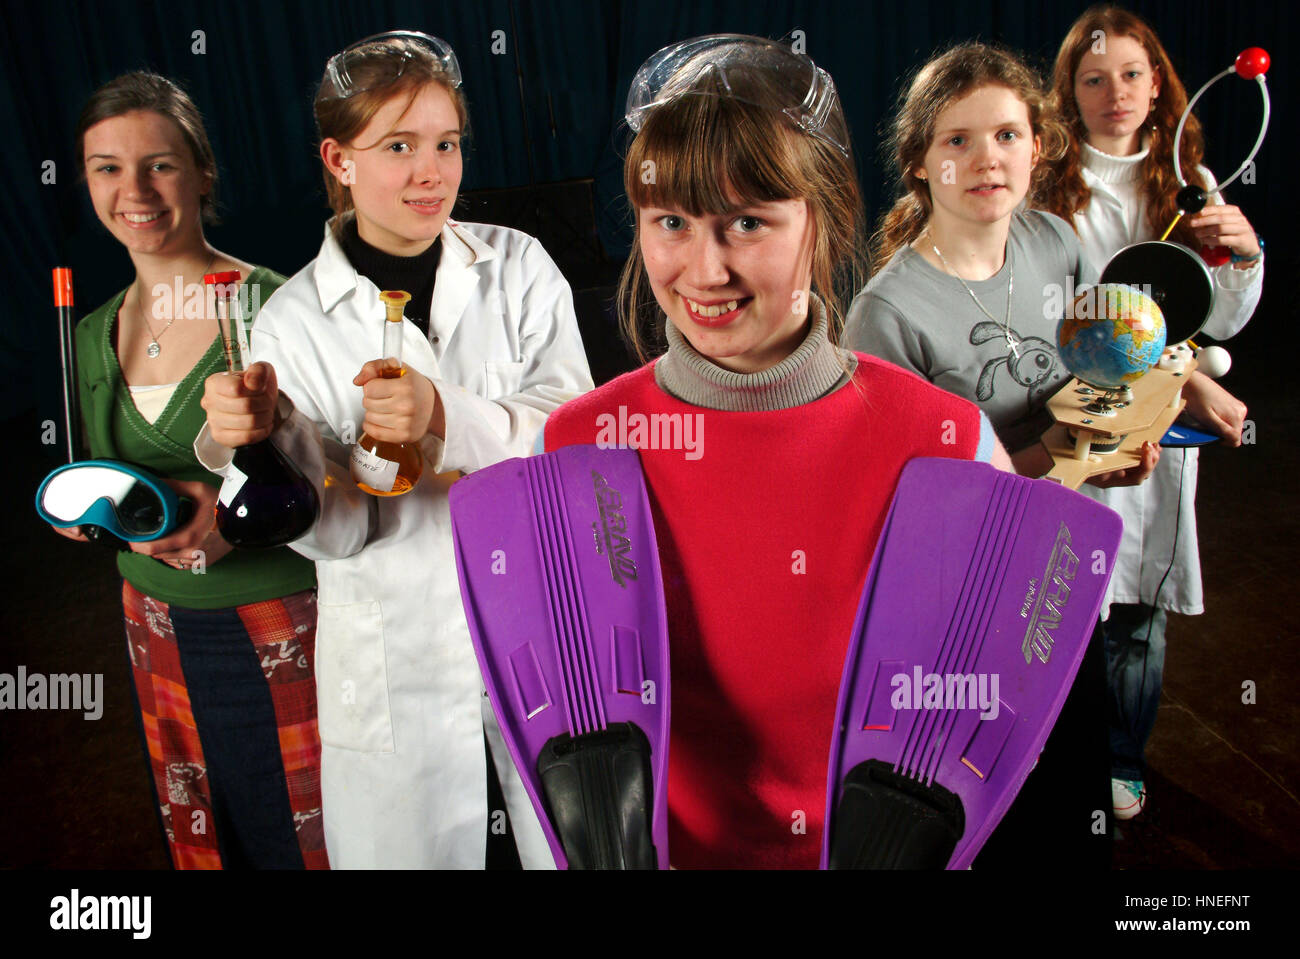 Girls at Rednock School, Dursley representing career choices including sports, science, chemist, geographer etc. - Stock Image